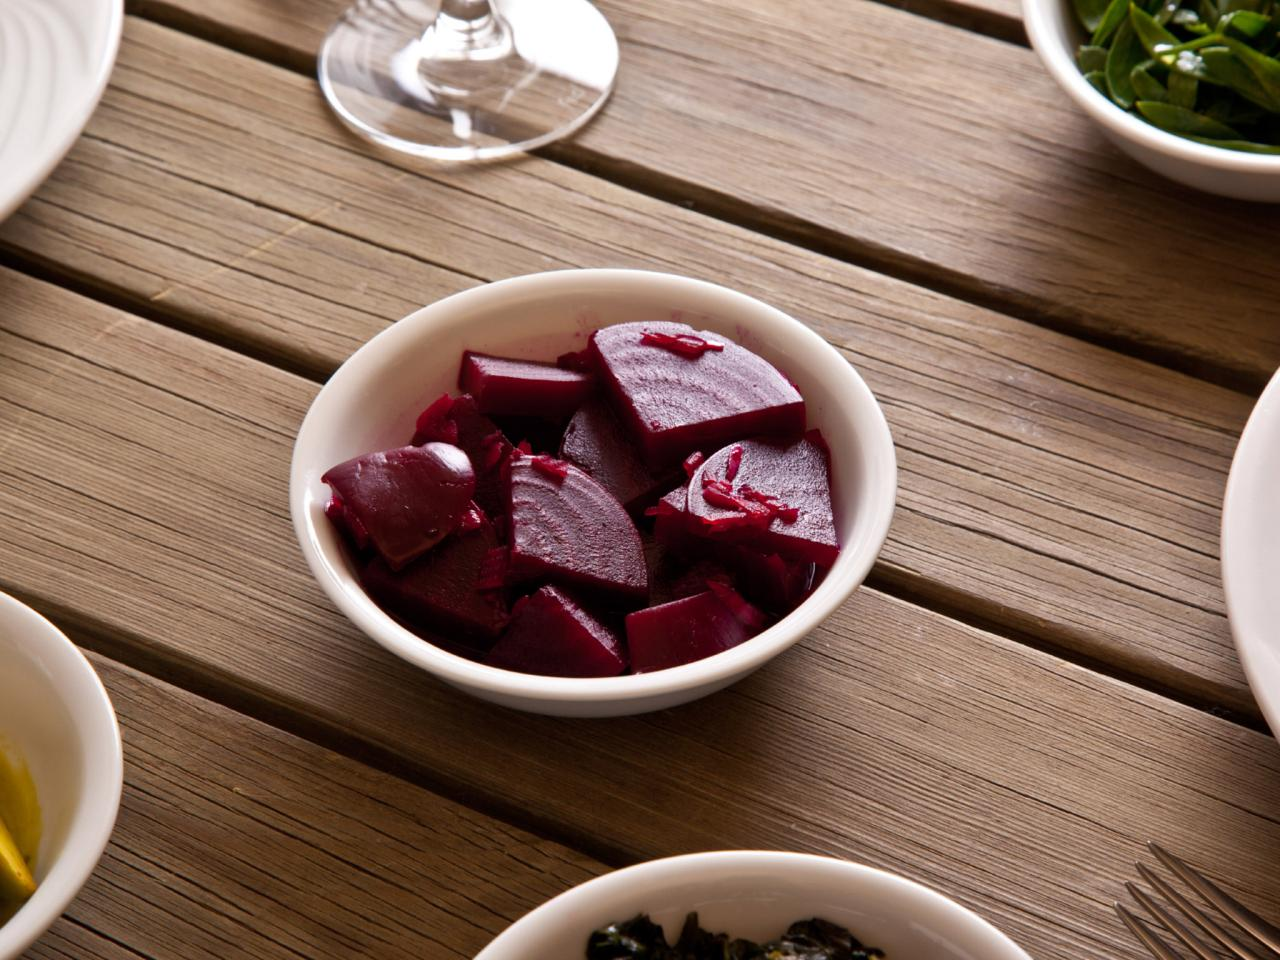 Why is it important to cook the beets correctly